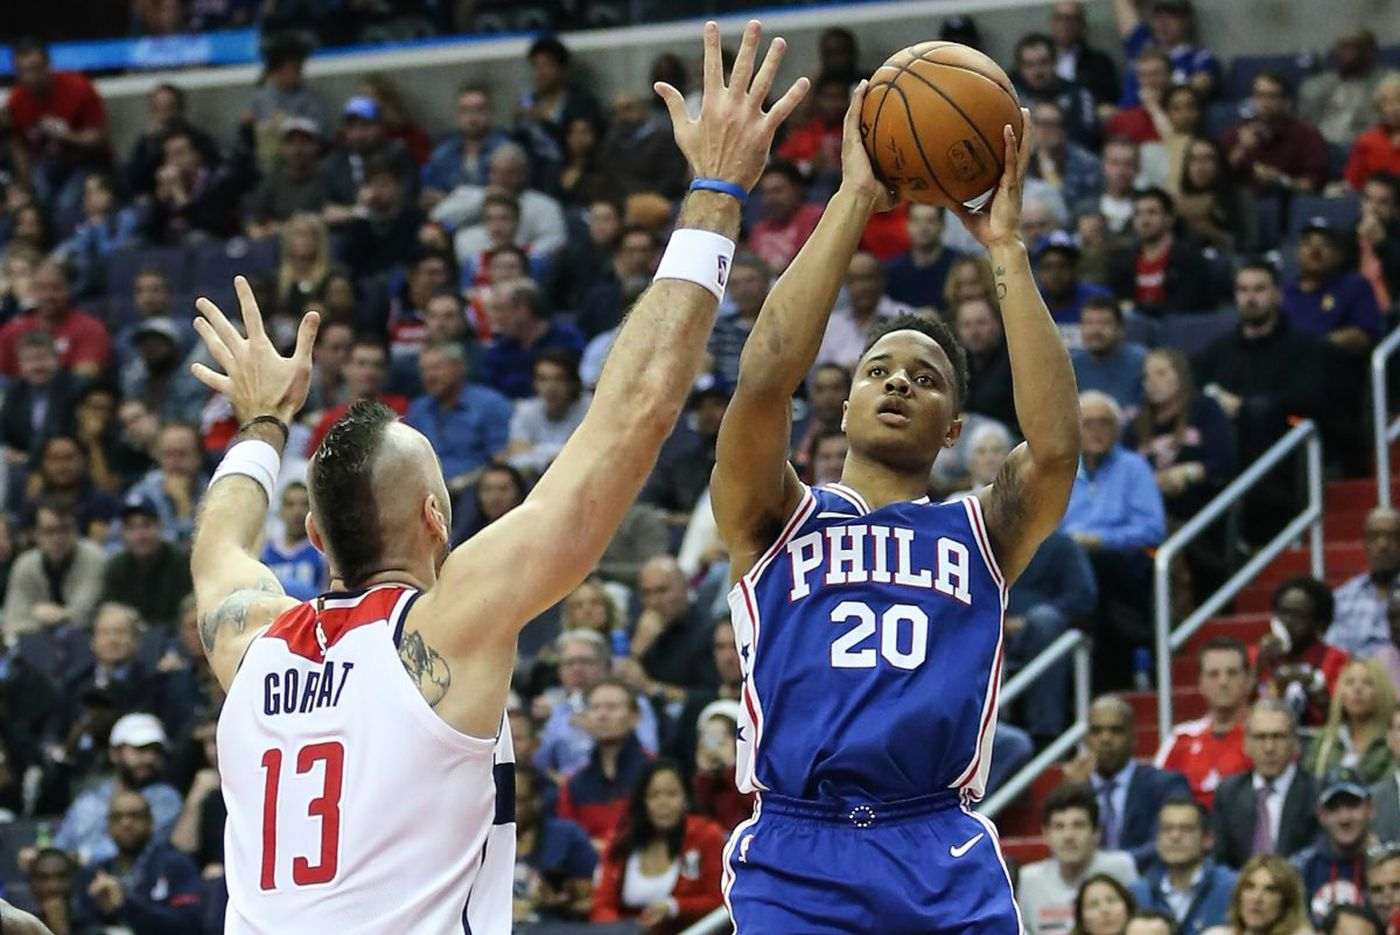 Sixers: Markelle Fultz might not return this season; he has teammates' support